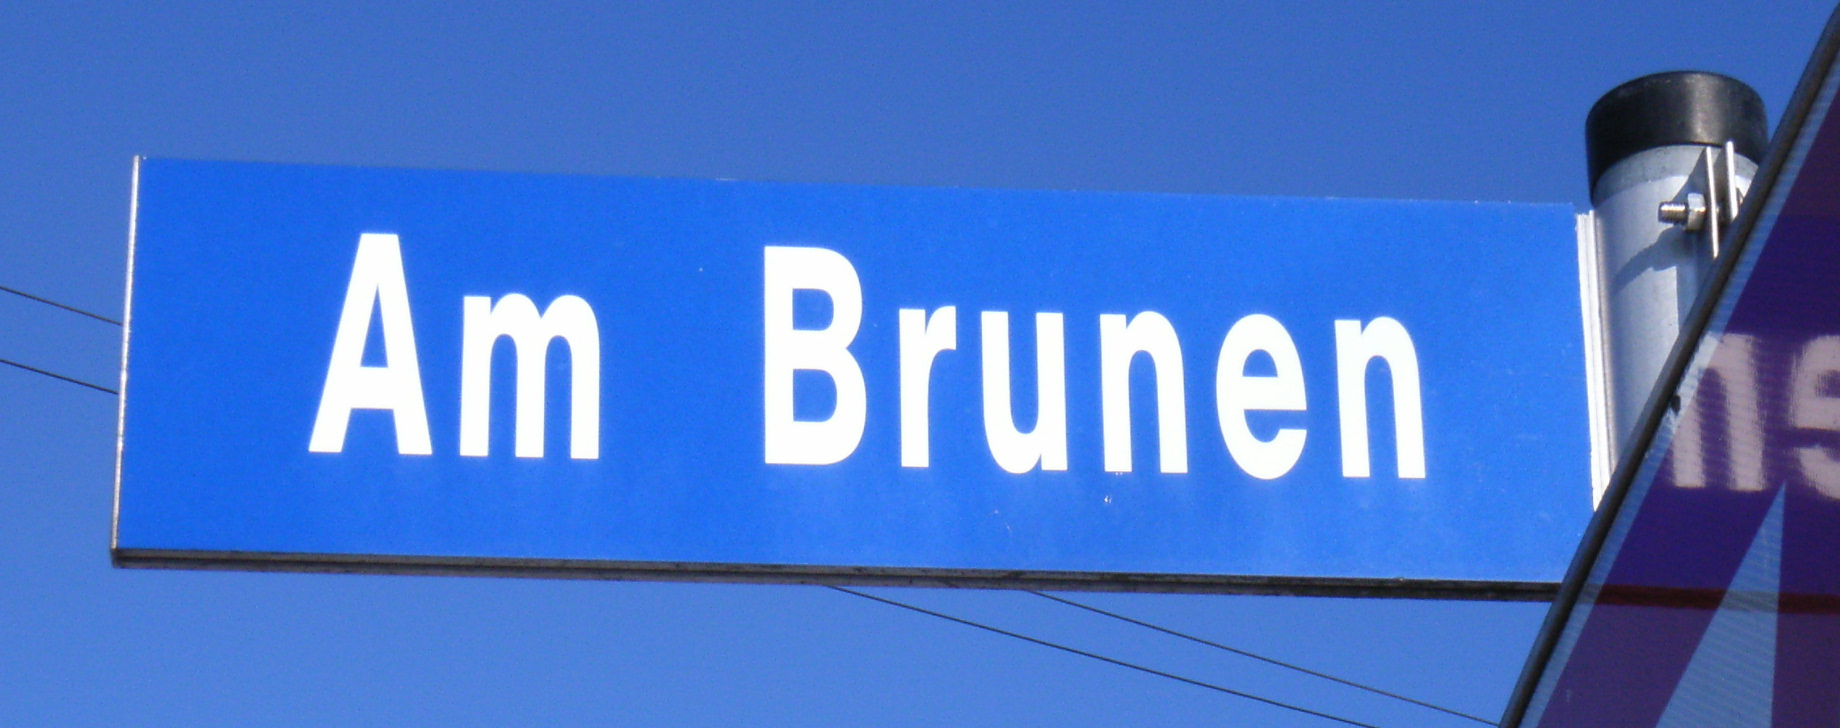 Am Brunden